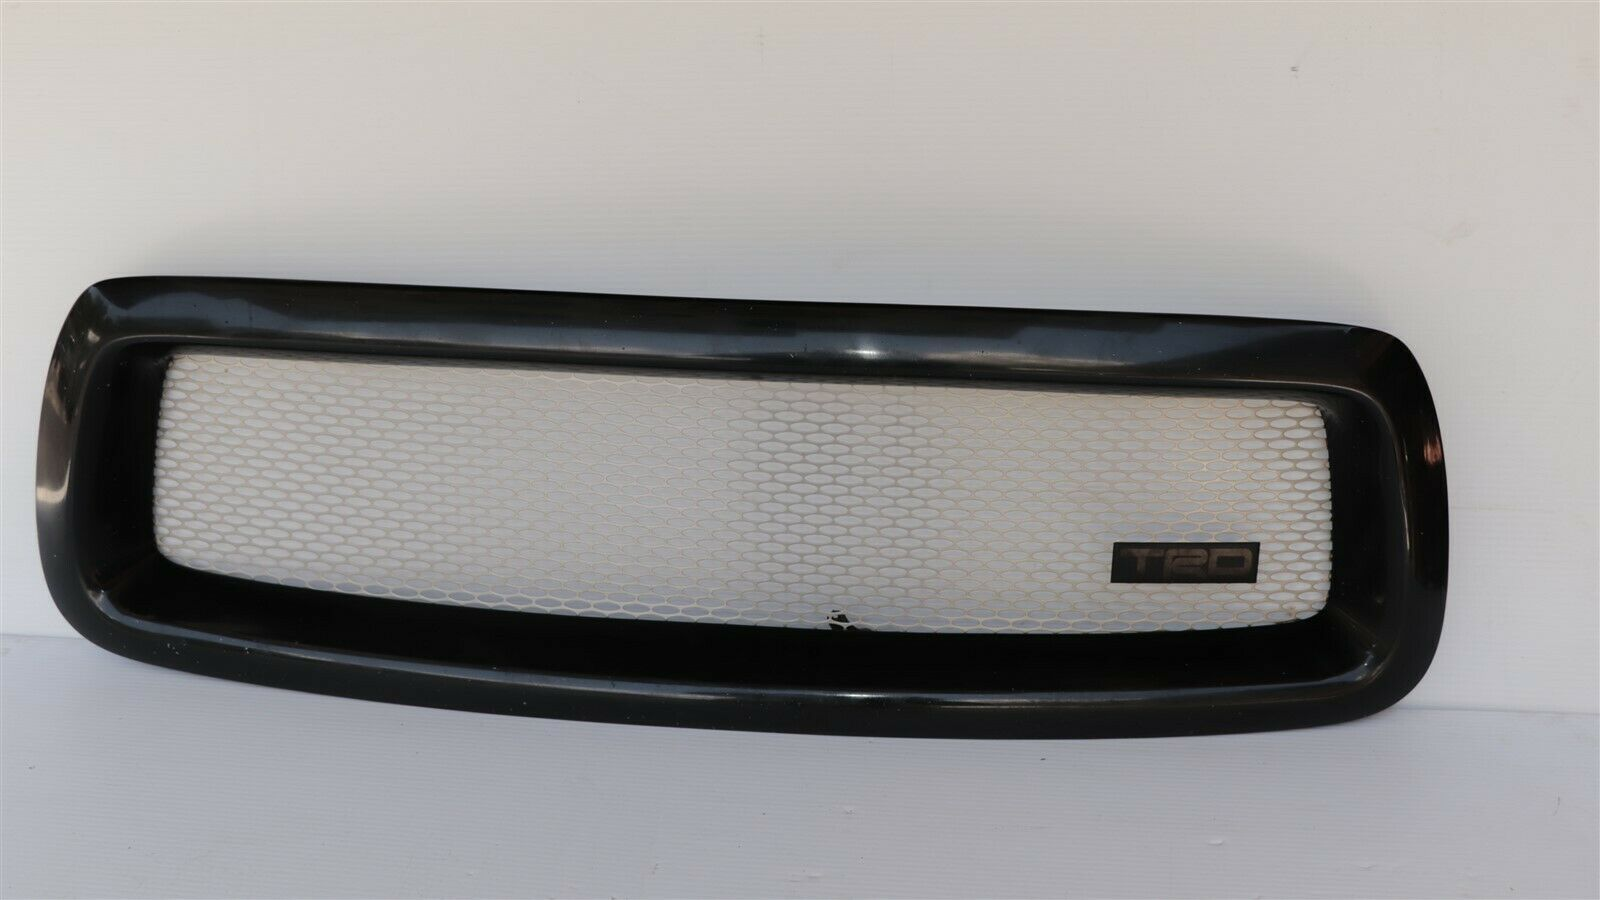 02-04 Toyota Sequoia TRD Front Gril Grille Grill - HONEYCOMB Mesh